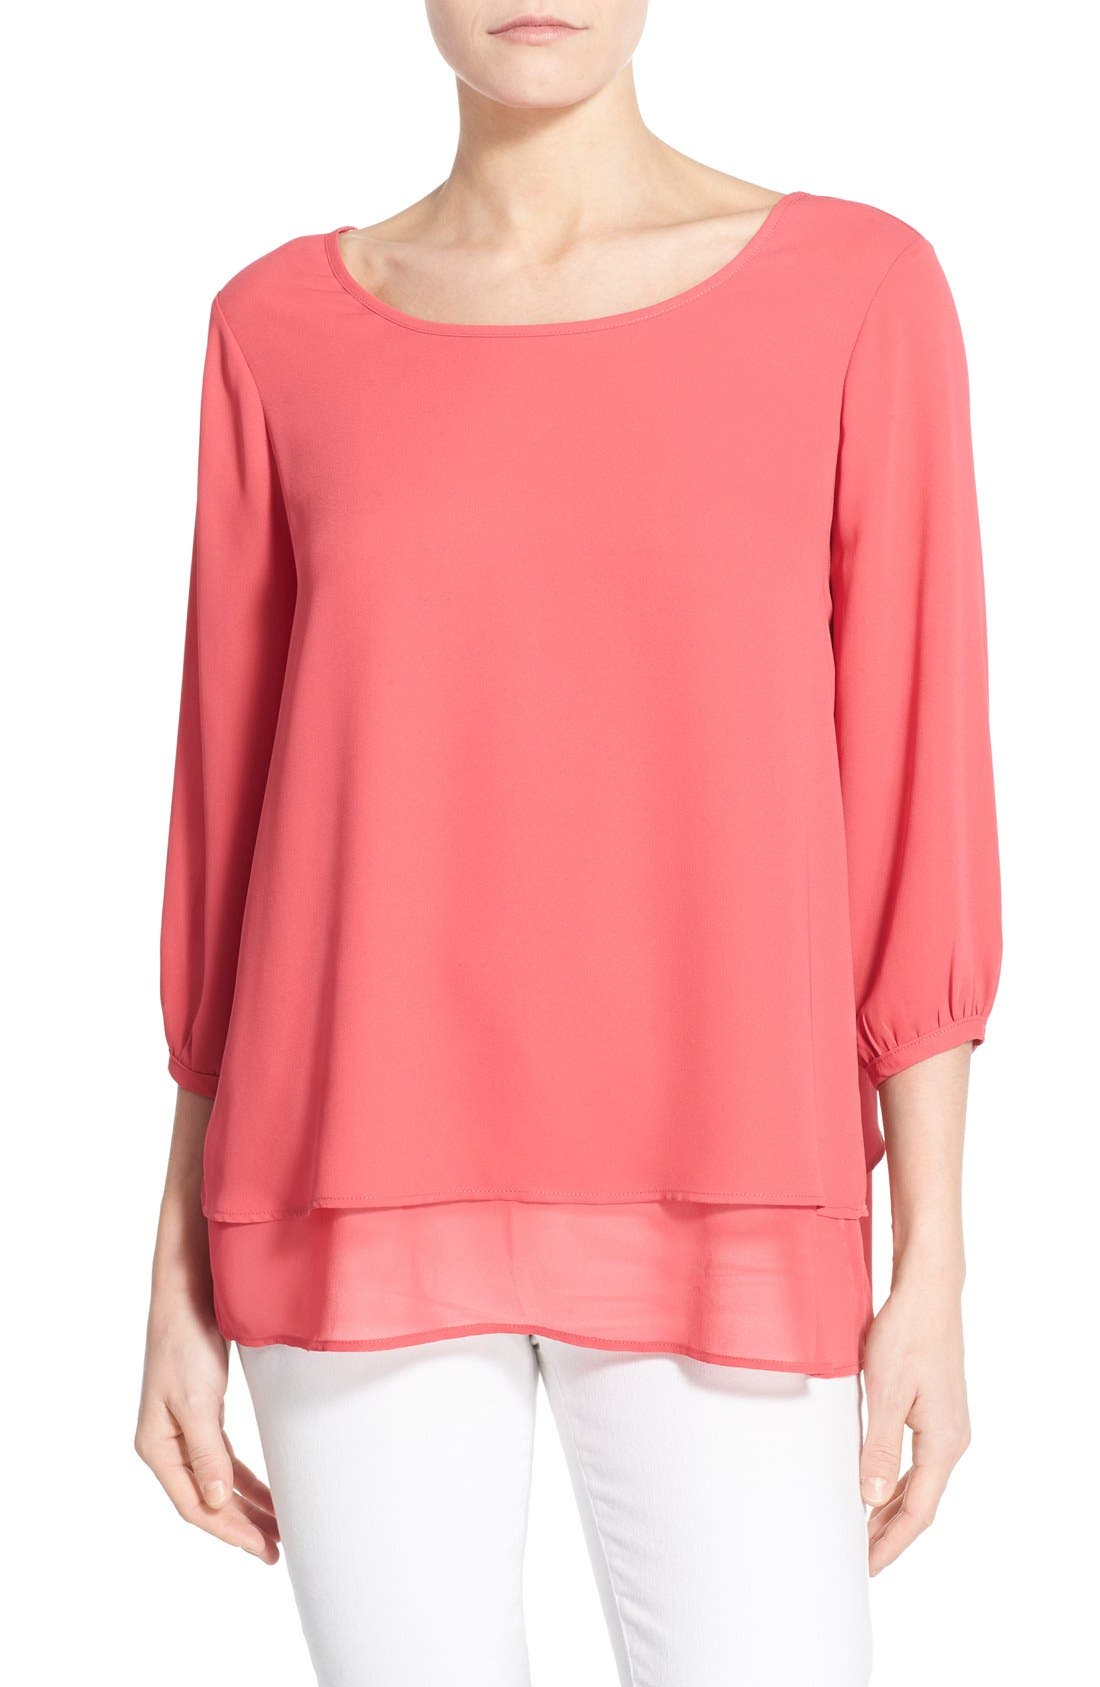 Main Image - Pleione Layered Chiffon Top (Regular & Petite)